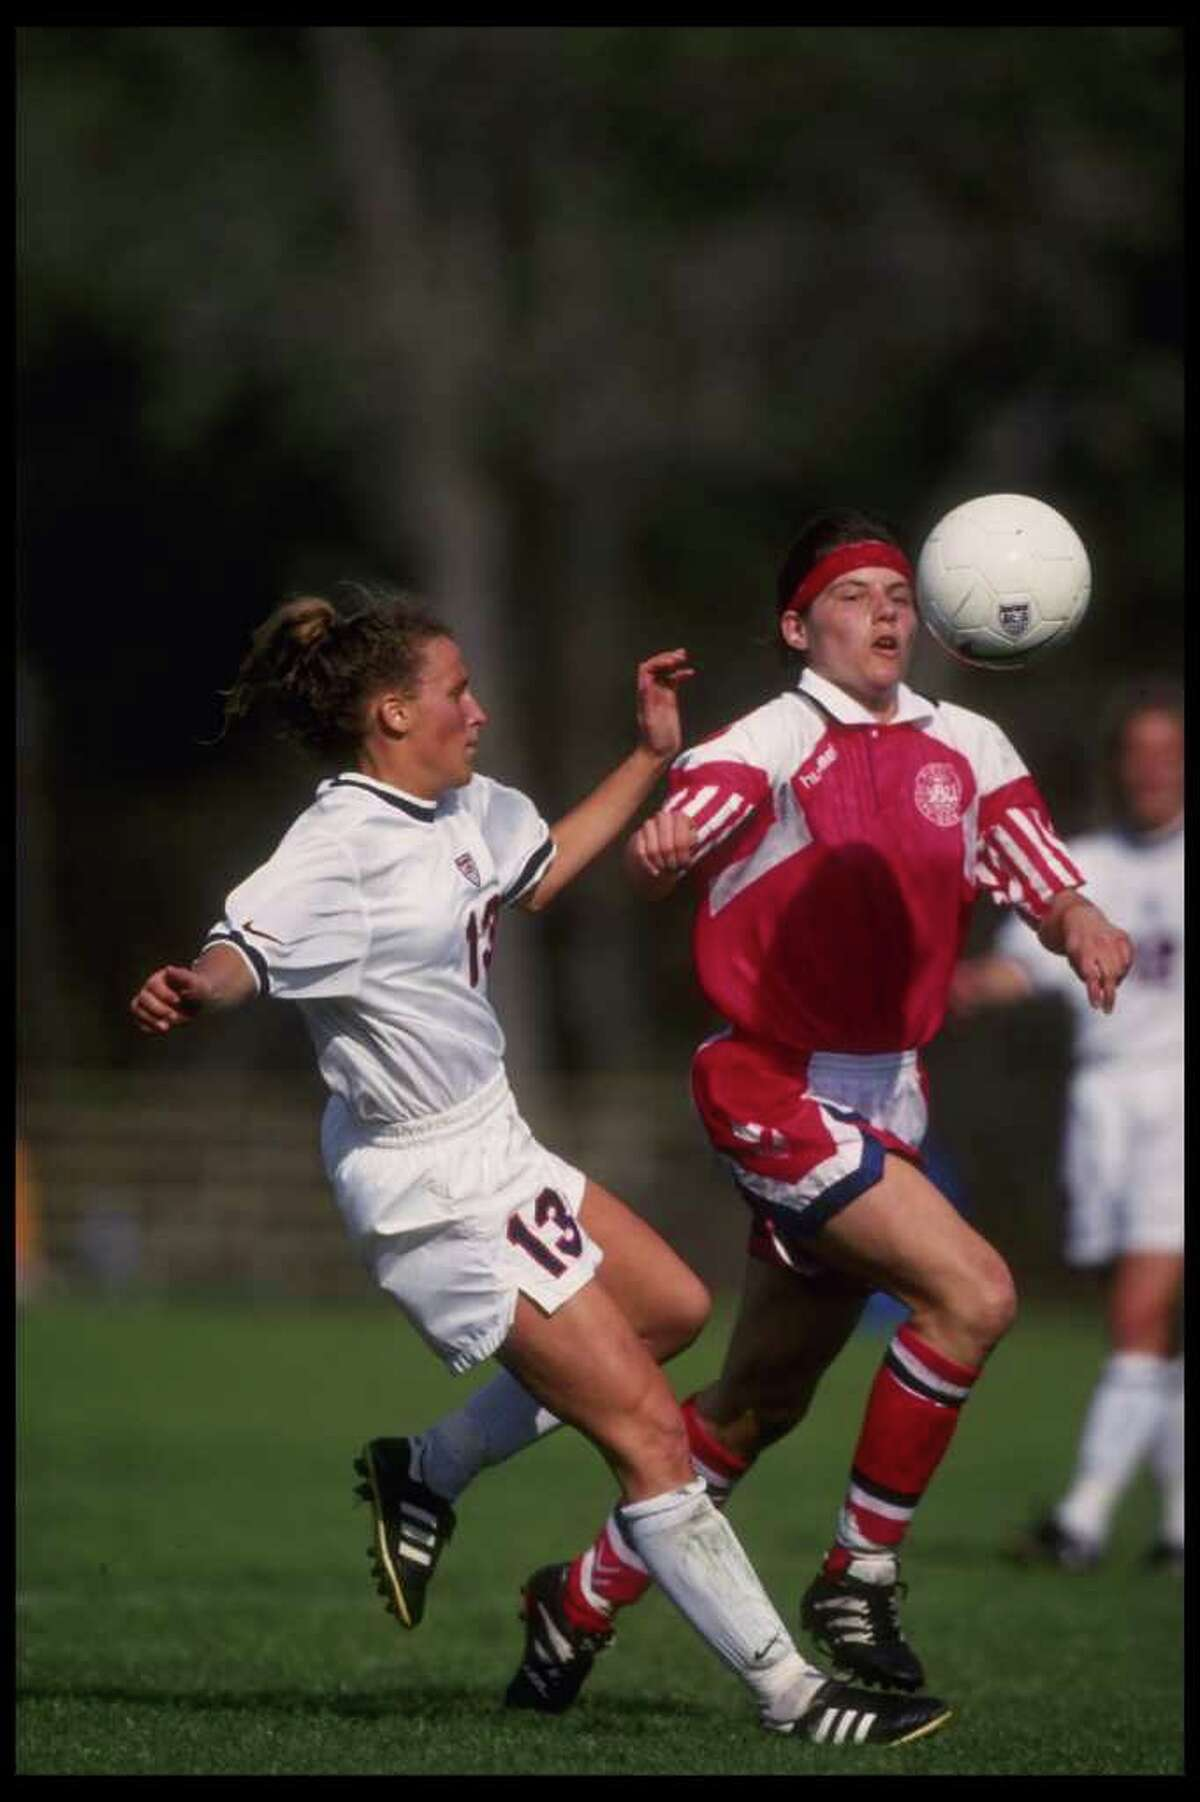 Feb 1995: Kristine Lilly of the USA in action during the USA''s soccer game versus Denmark in Orlando, Florida. Mandatory Credit: Mike Powell/Allsport